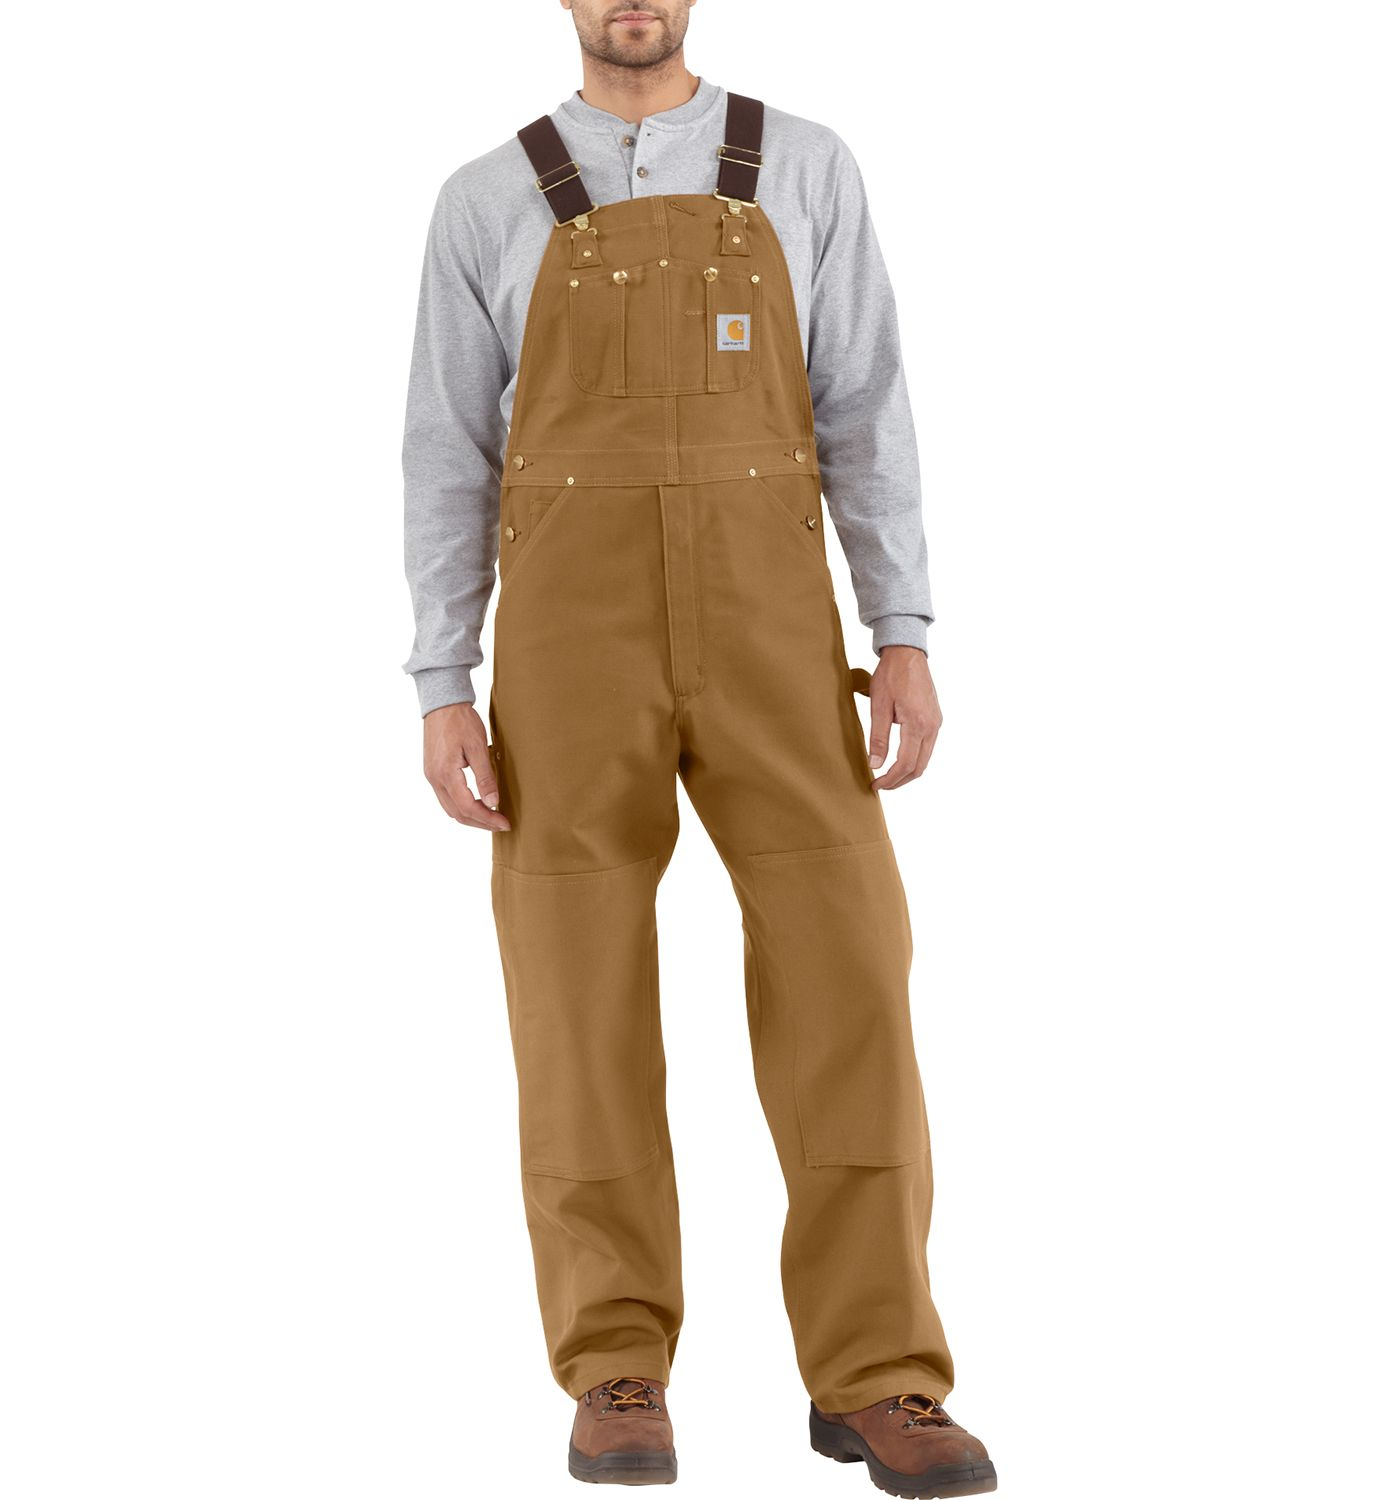 Carhartt Men's Unlined Duck Bibs